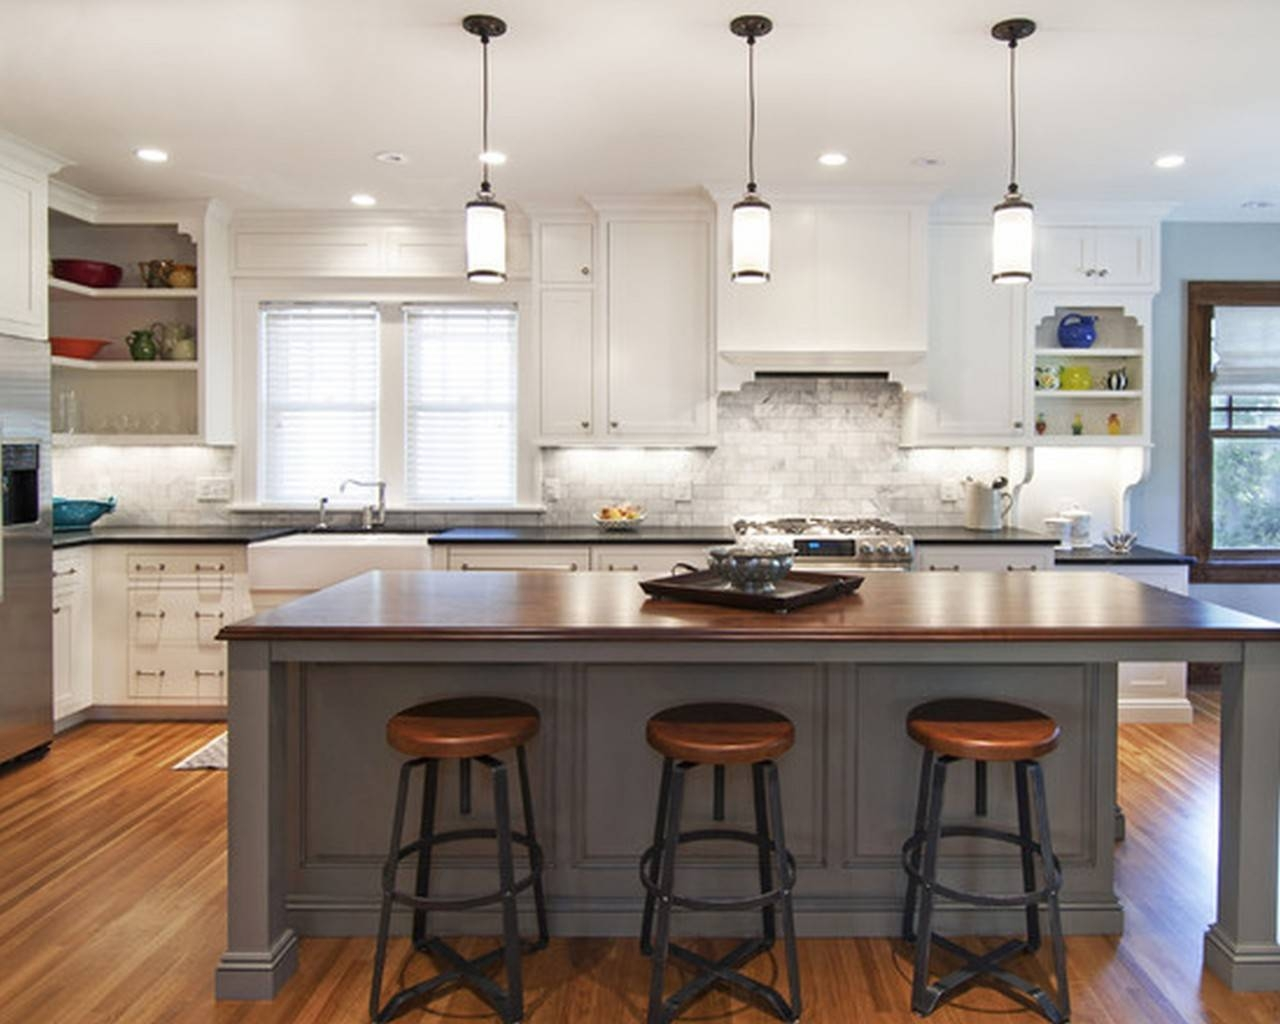 Featured Photo of Lighting Pendants For Kitchen Islands